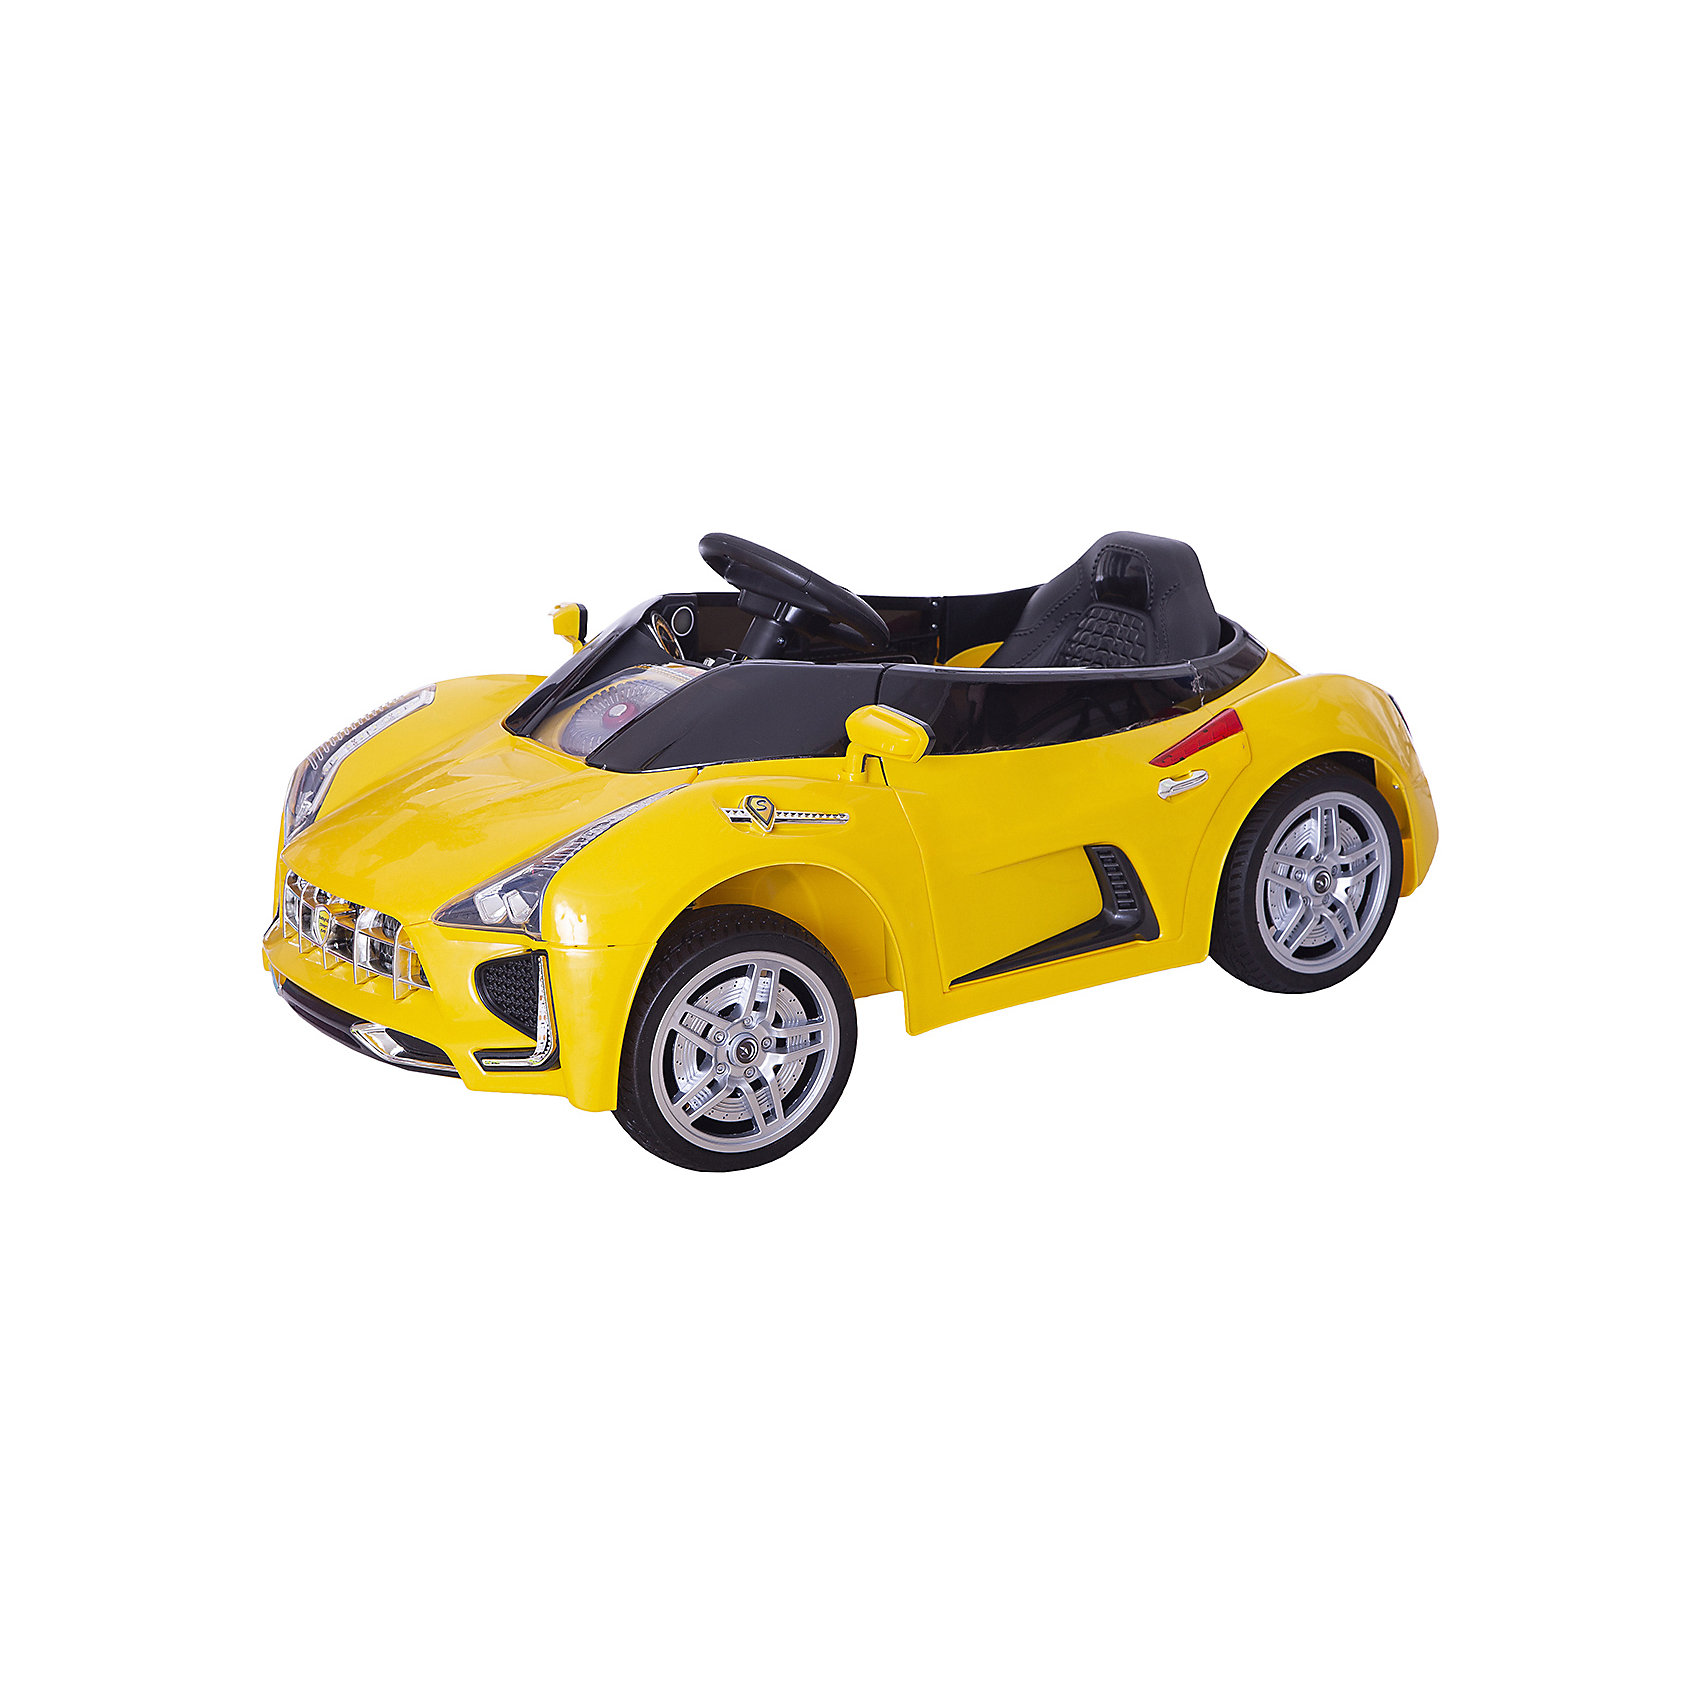 ������������� Sport-Car, ������, BabyHit (Baby Hit)